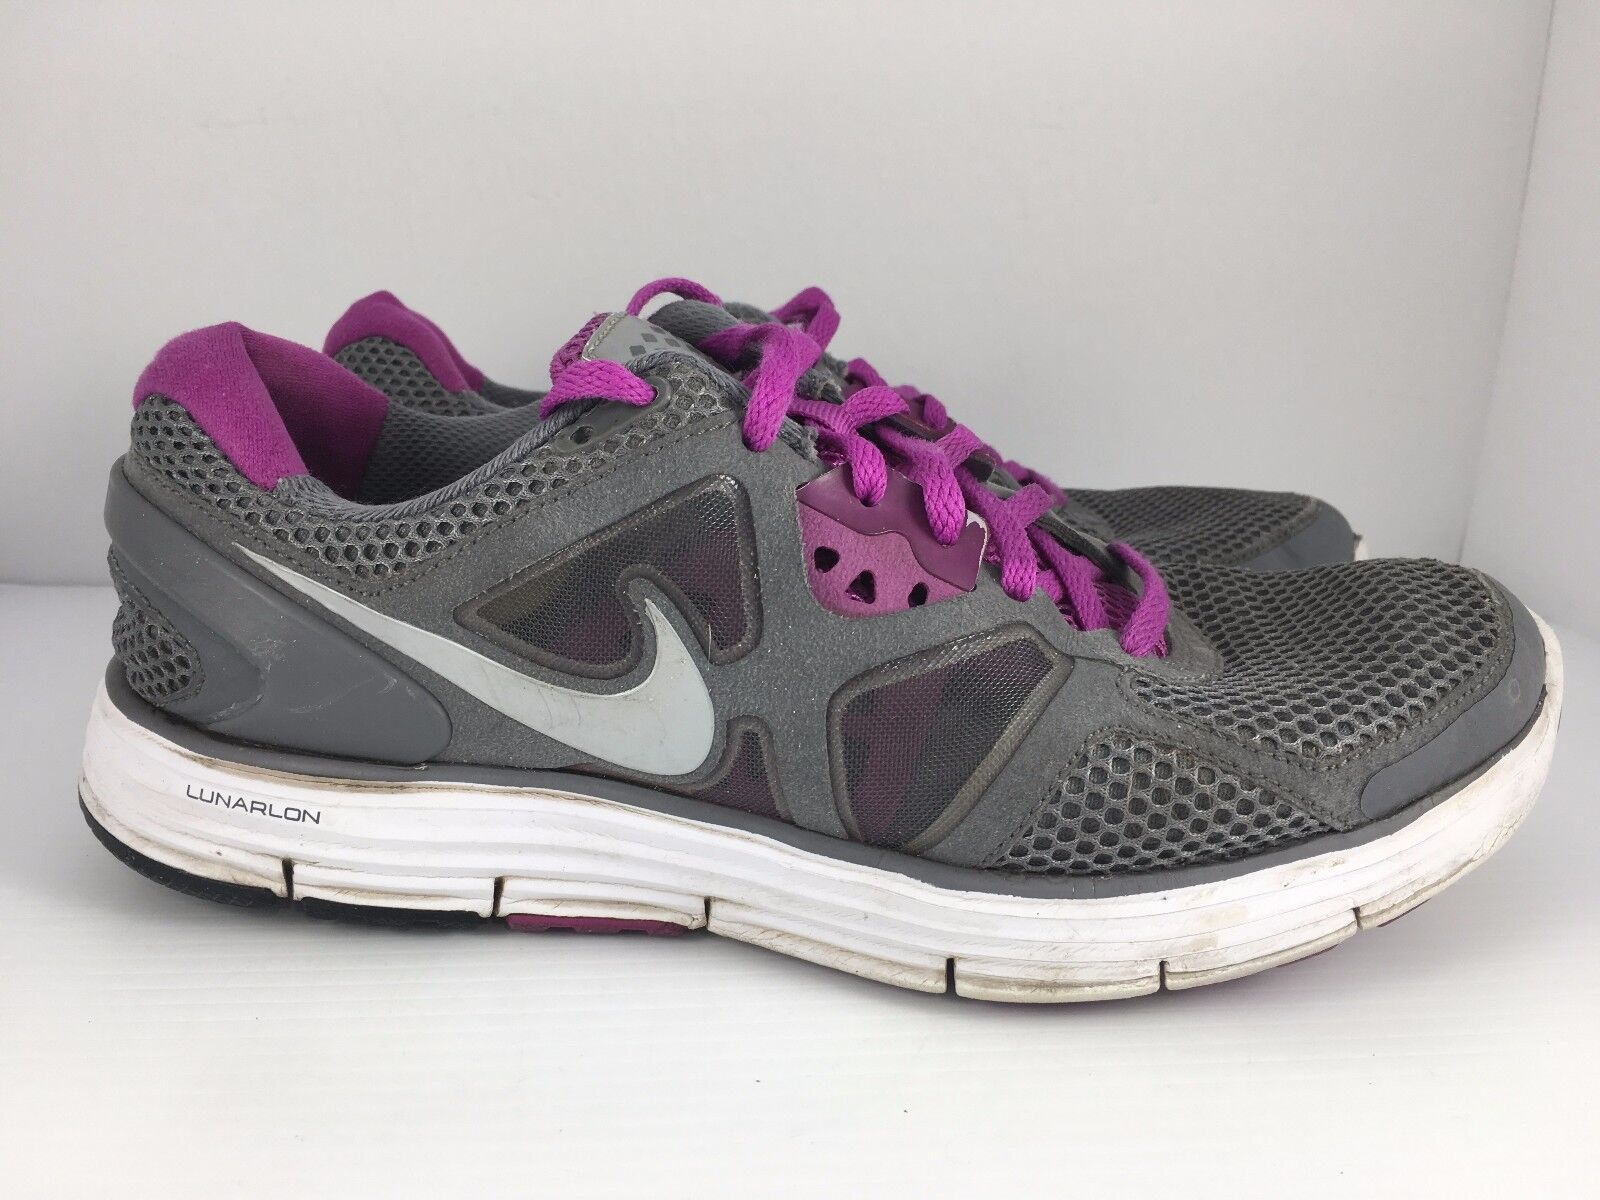 NIKE Lunarglide 3 Women US 9.5 + Gray + 9.5 Purple Athletic Running Shoes  J6 598058